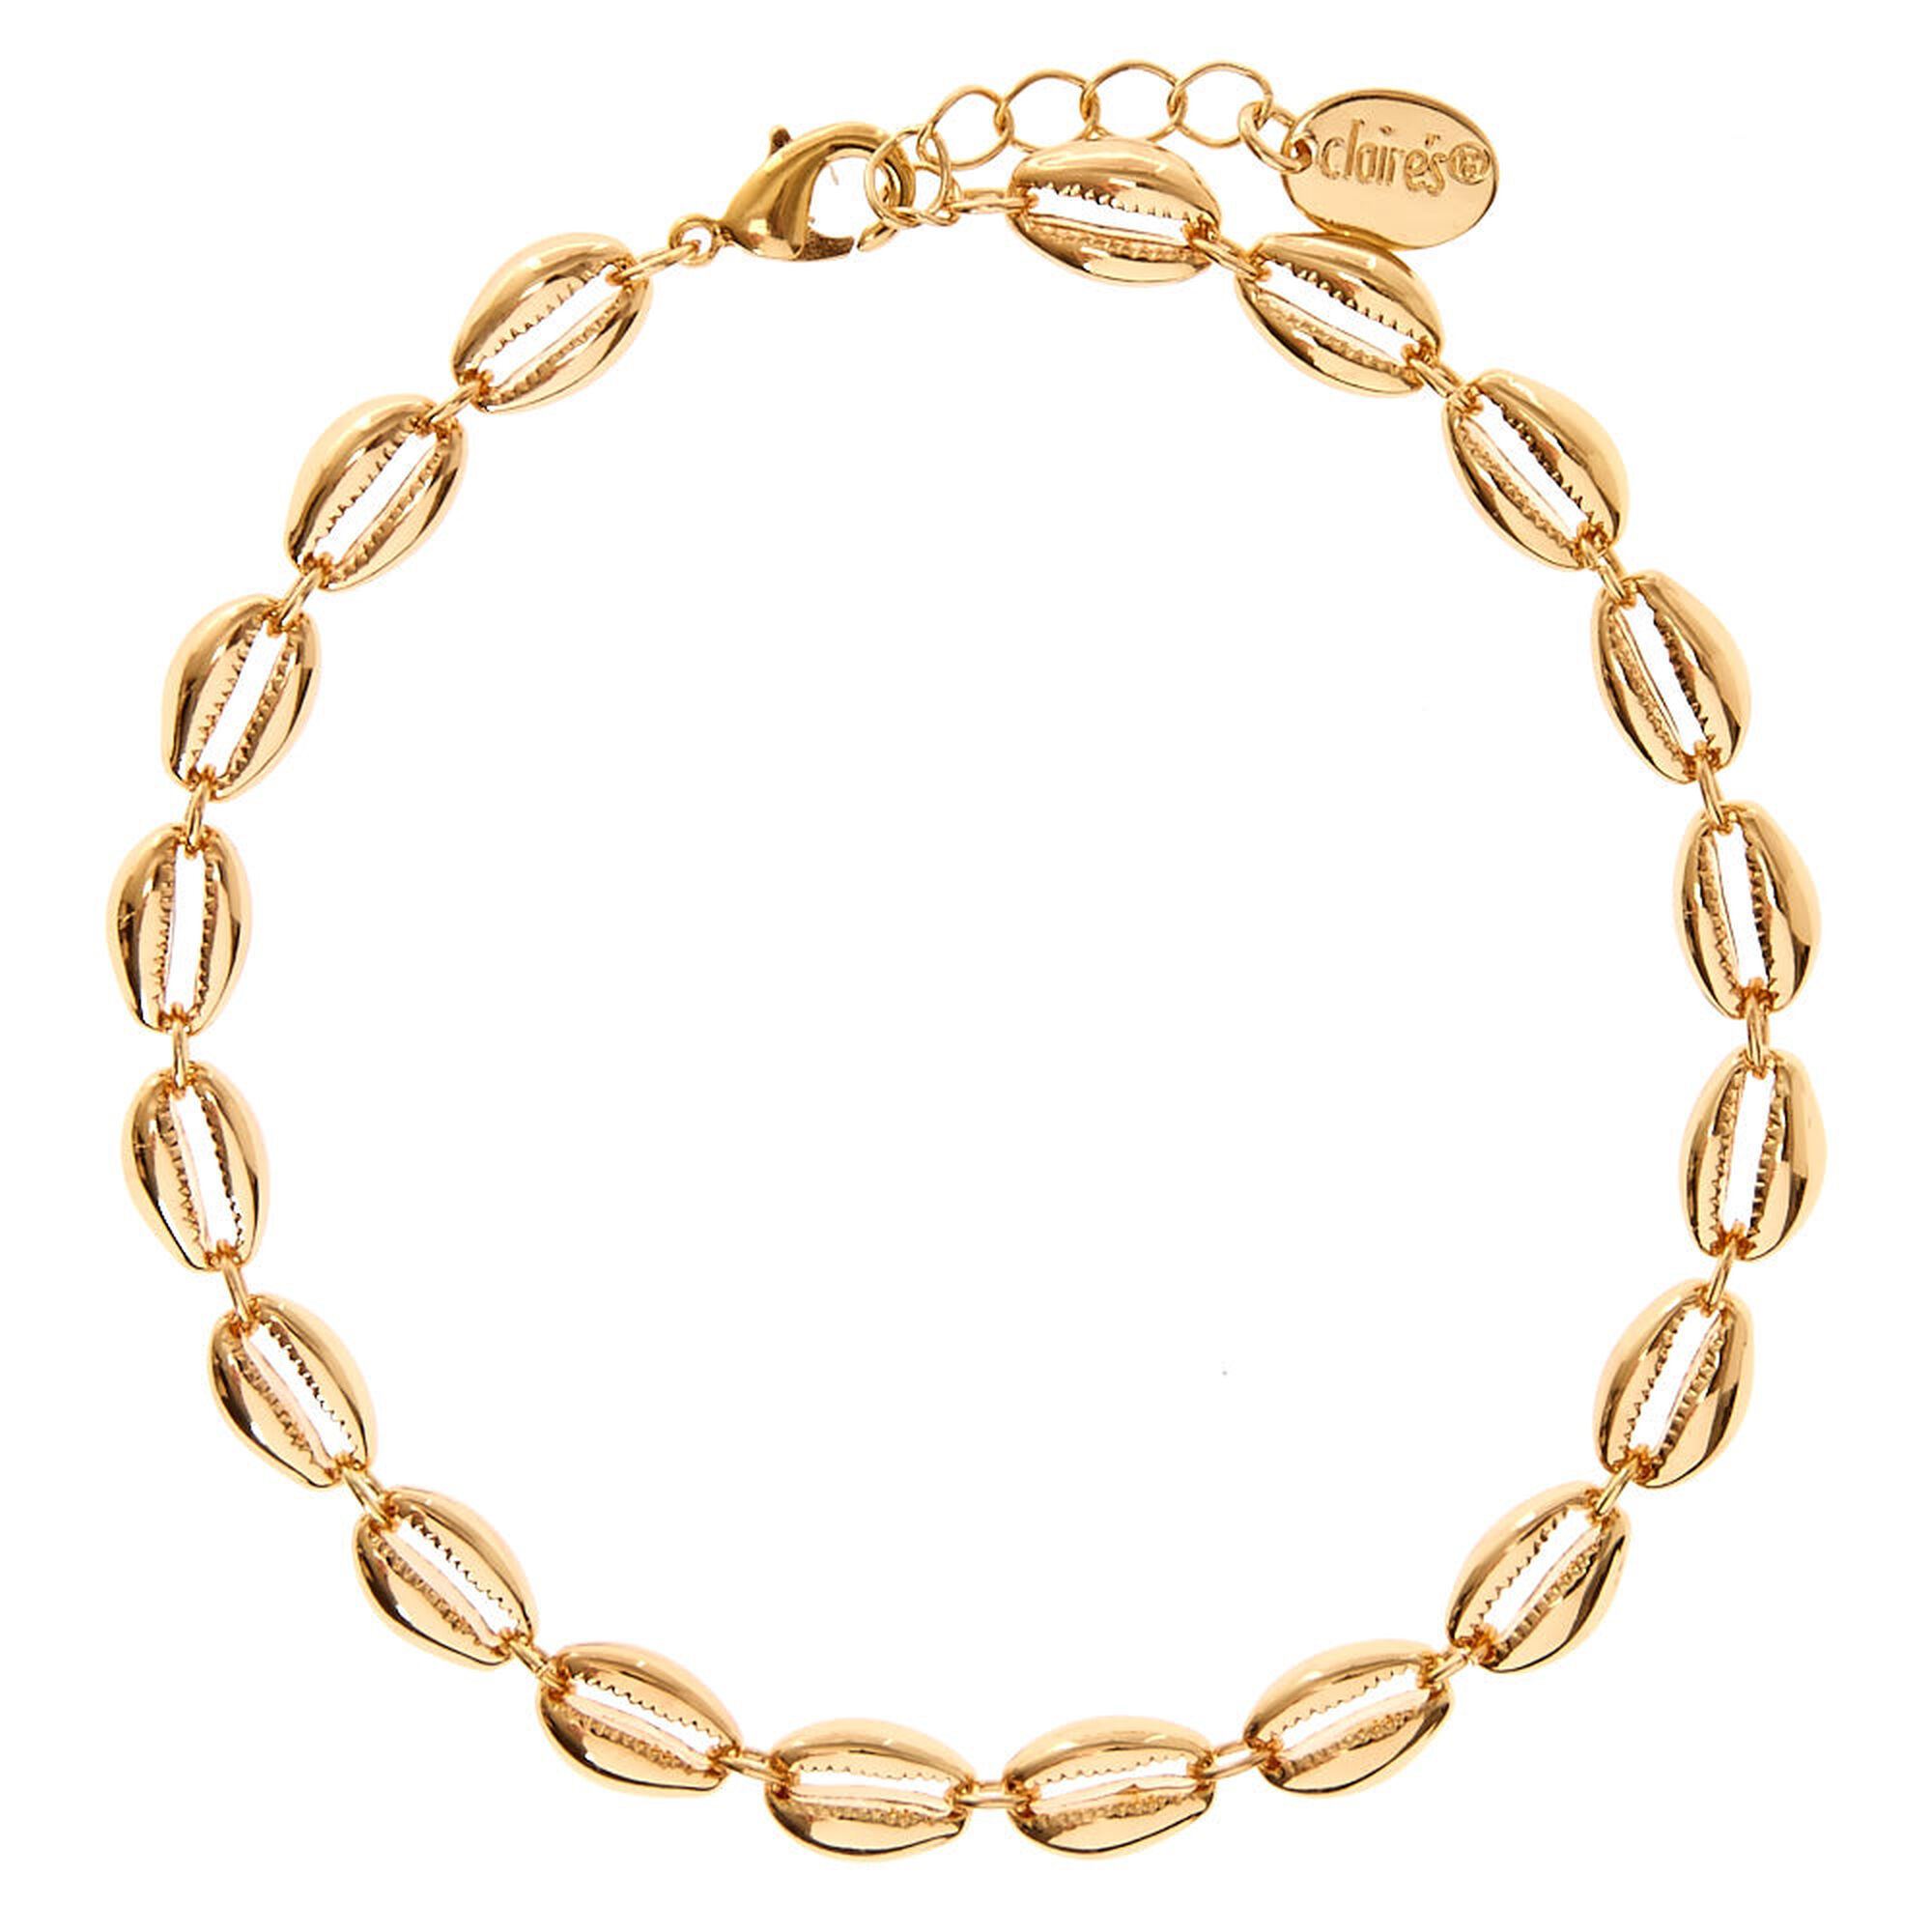 chain long cuban cm women dp com gold fashion jewelry amazon bracelet anklet barefoot plated foot